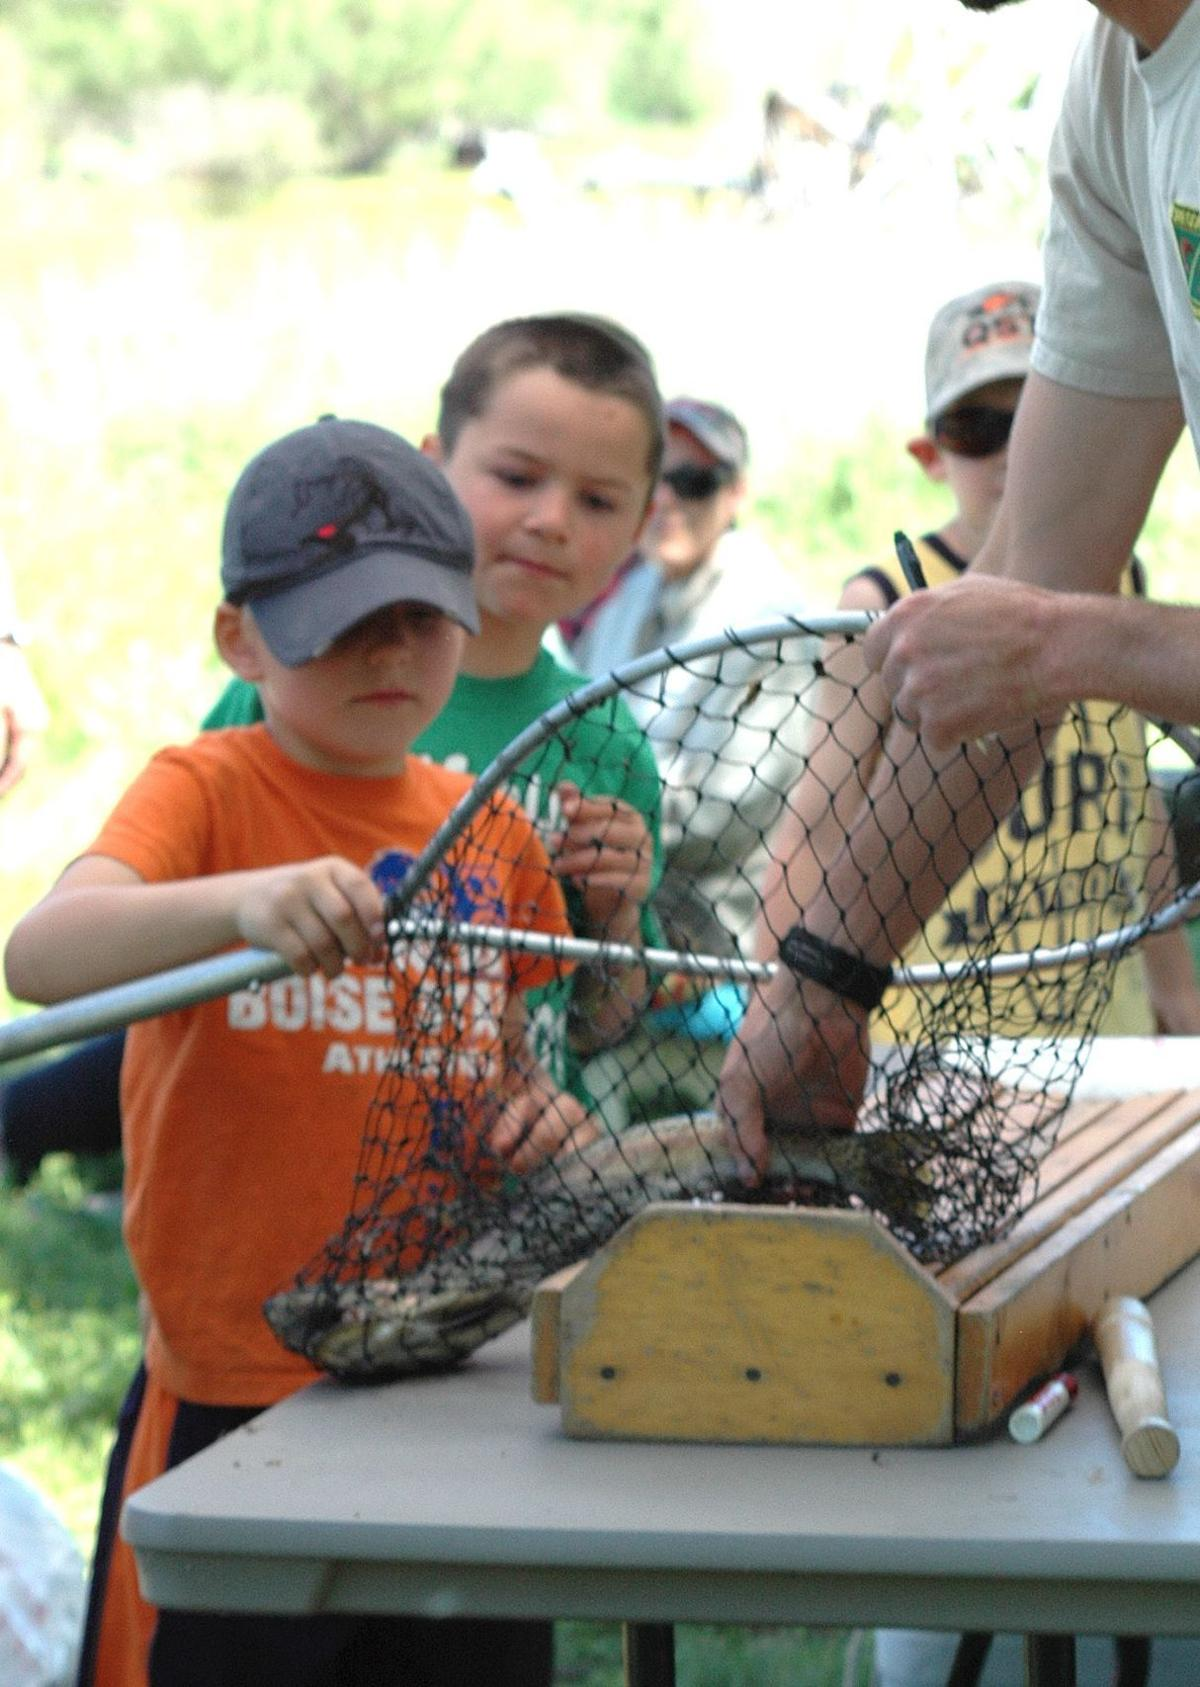 Littlest fisher takes home biggest fish